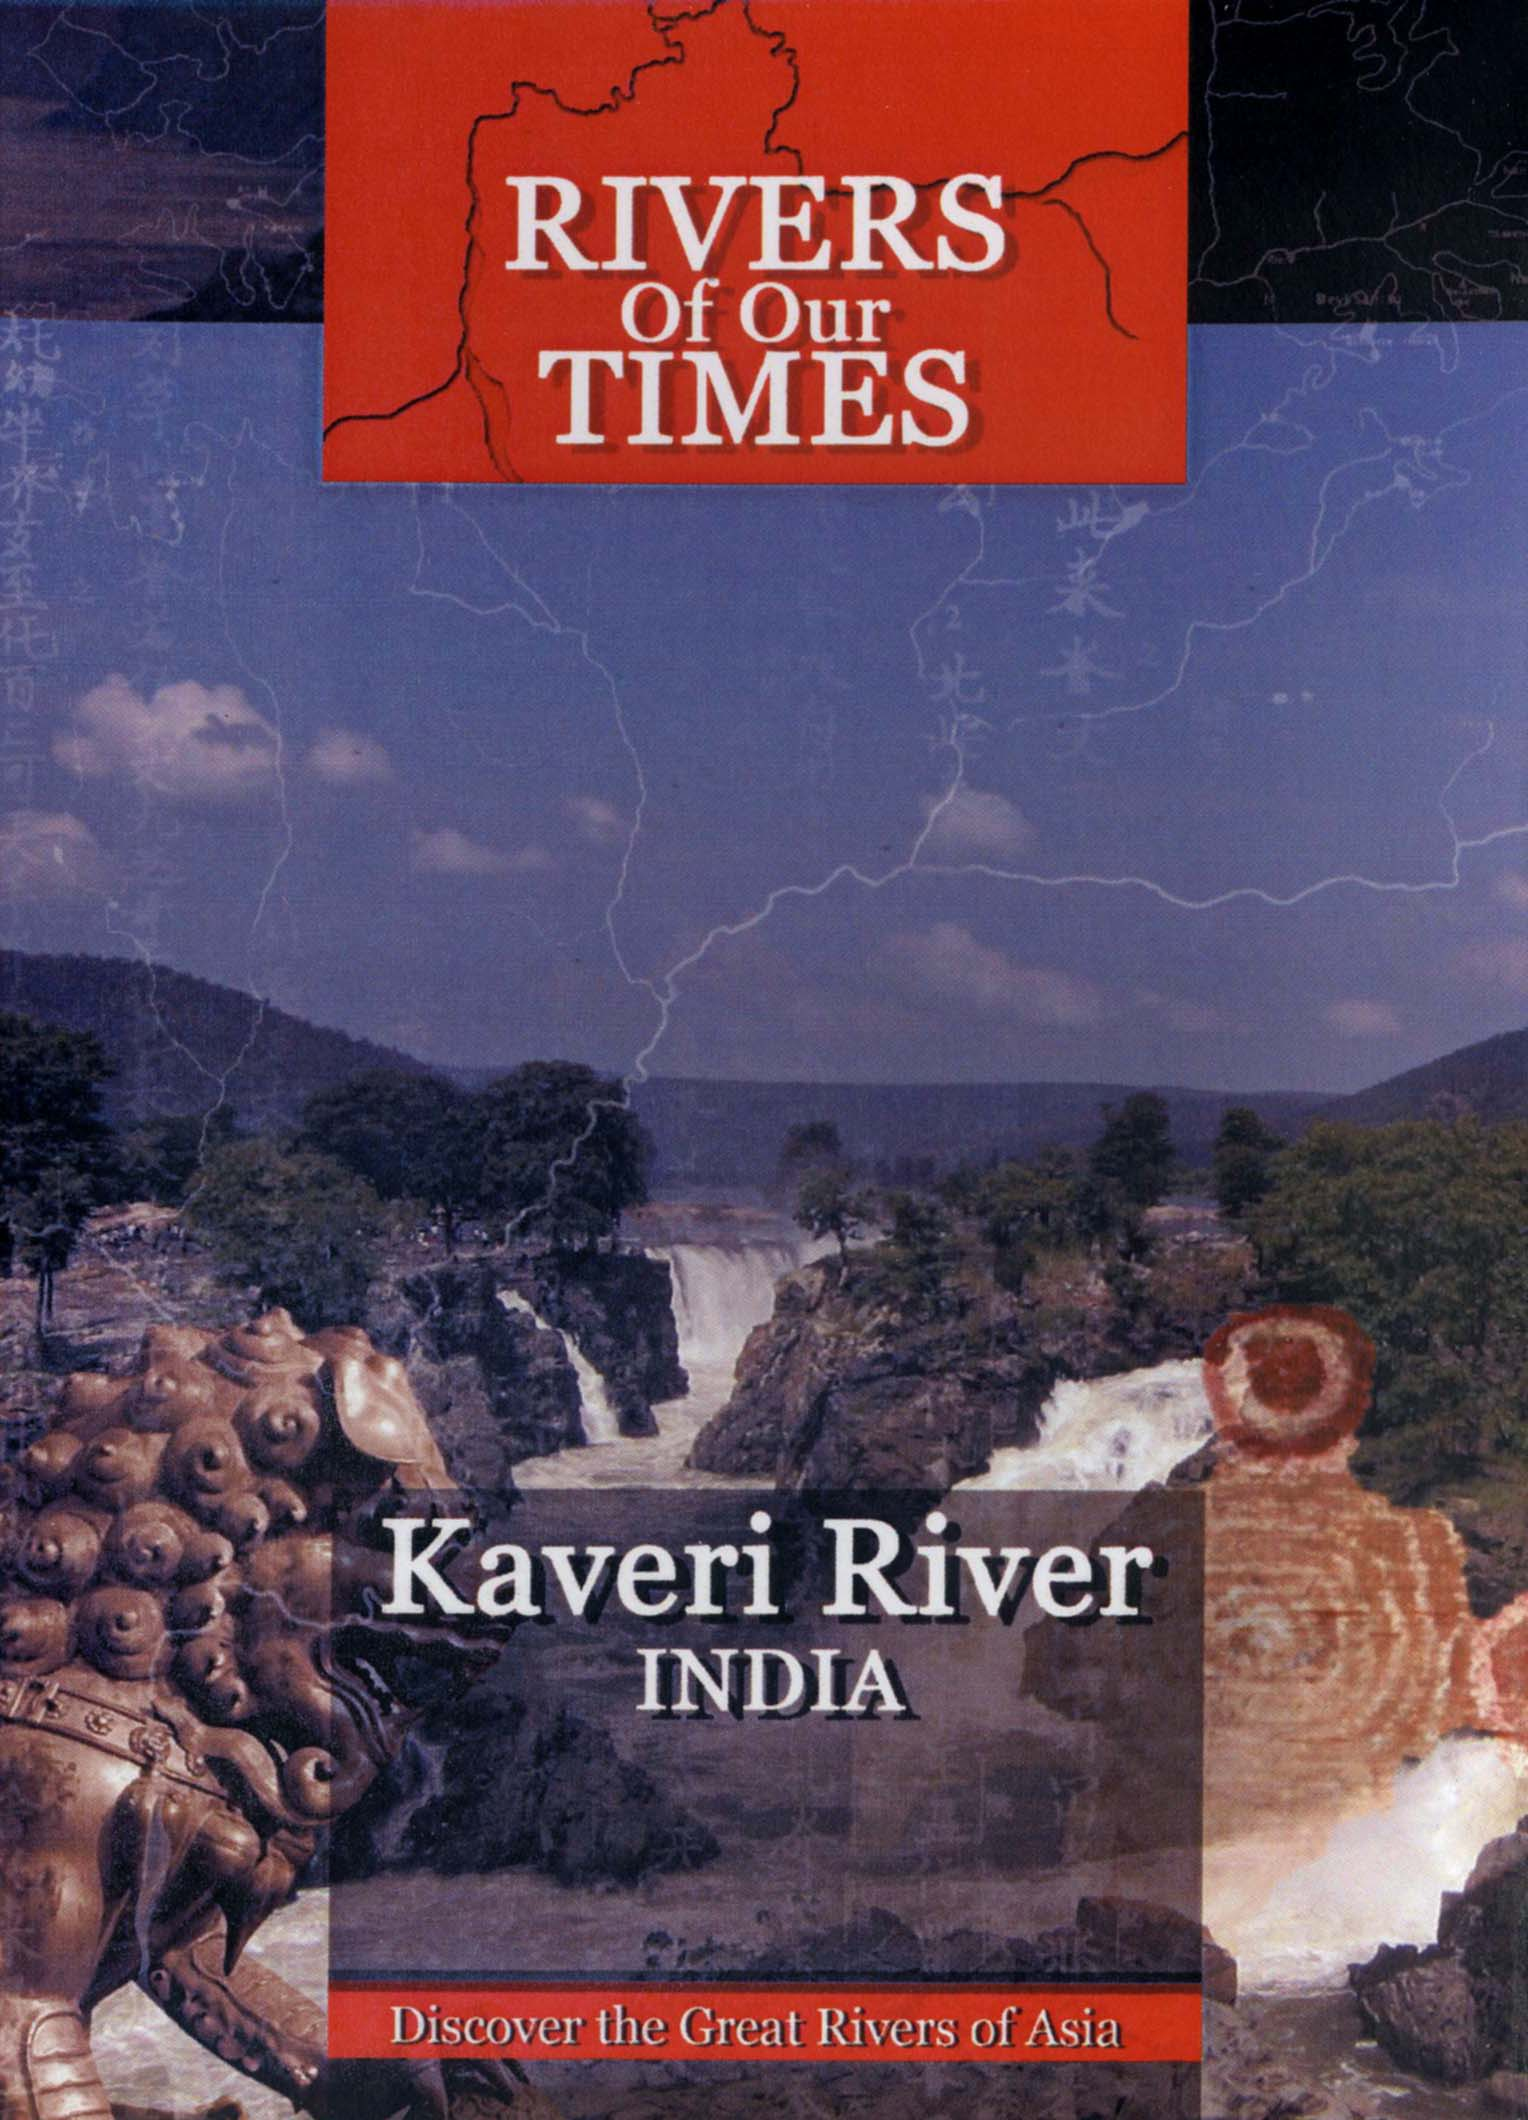 Rivers of Our Times: Kaveria River - India